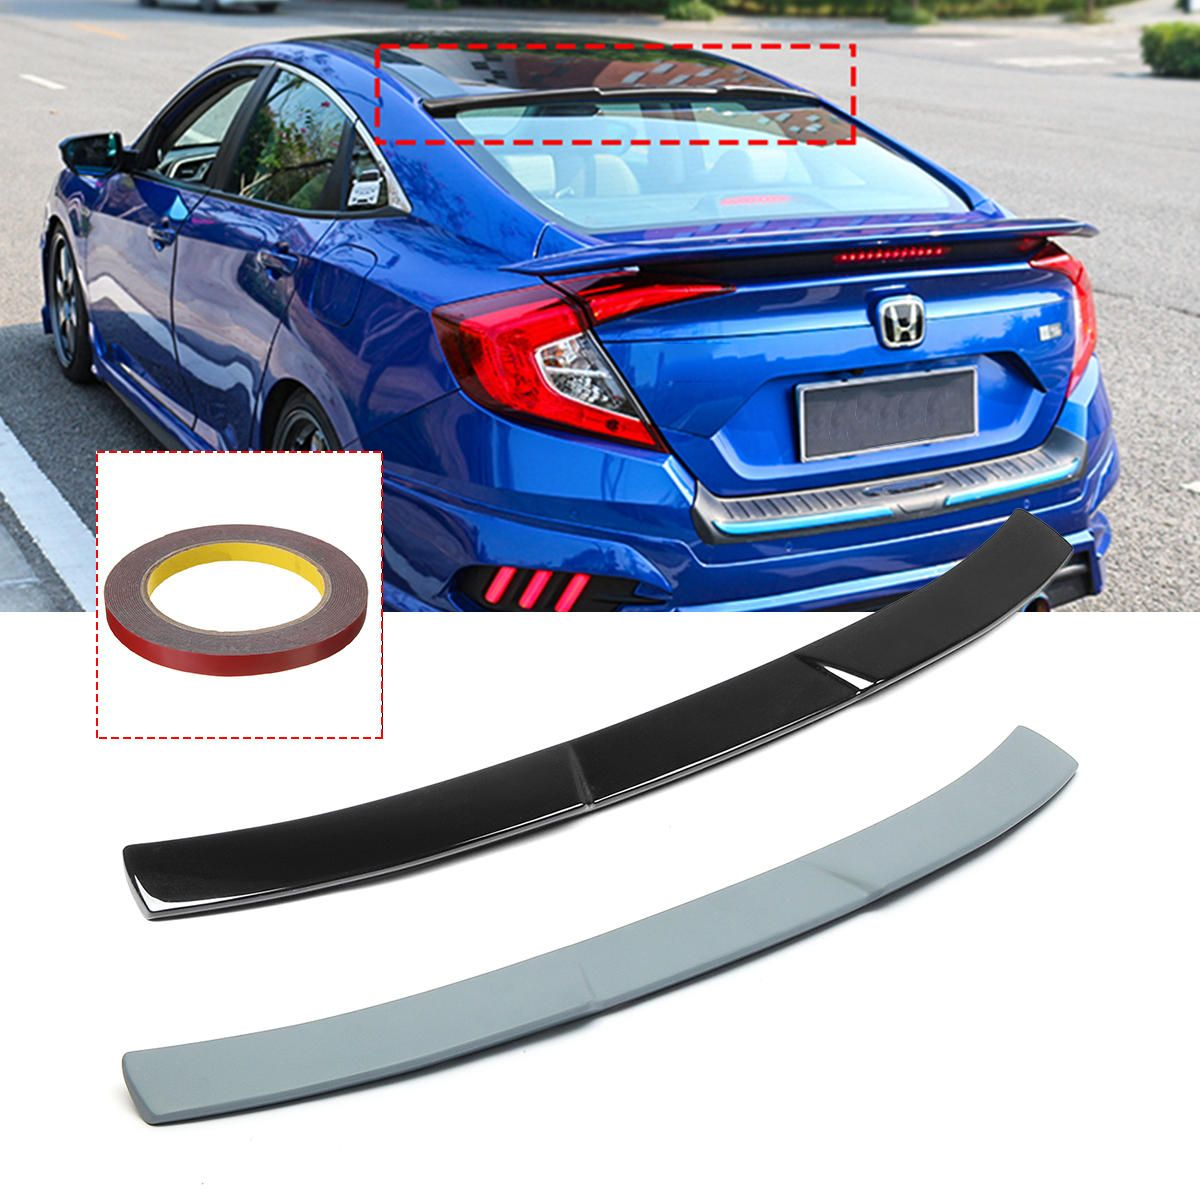 Rear Roof Car Spoiler Wing Fit For 10th Honda Civic X Sedan 2016 2018 In 2021 Honda Civic Honda Civic Accessories Civic Accessories